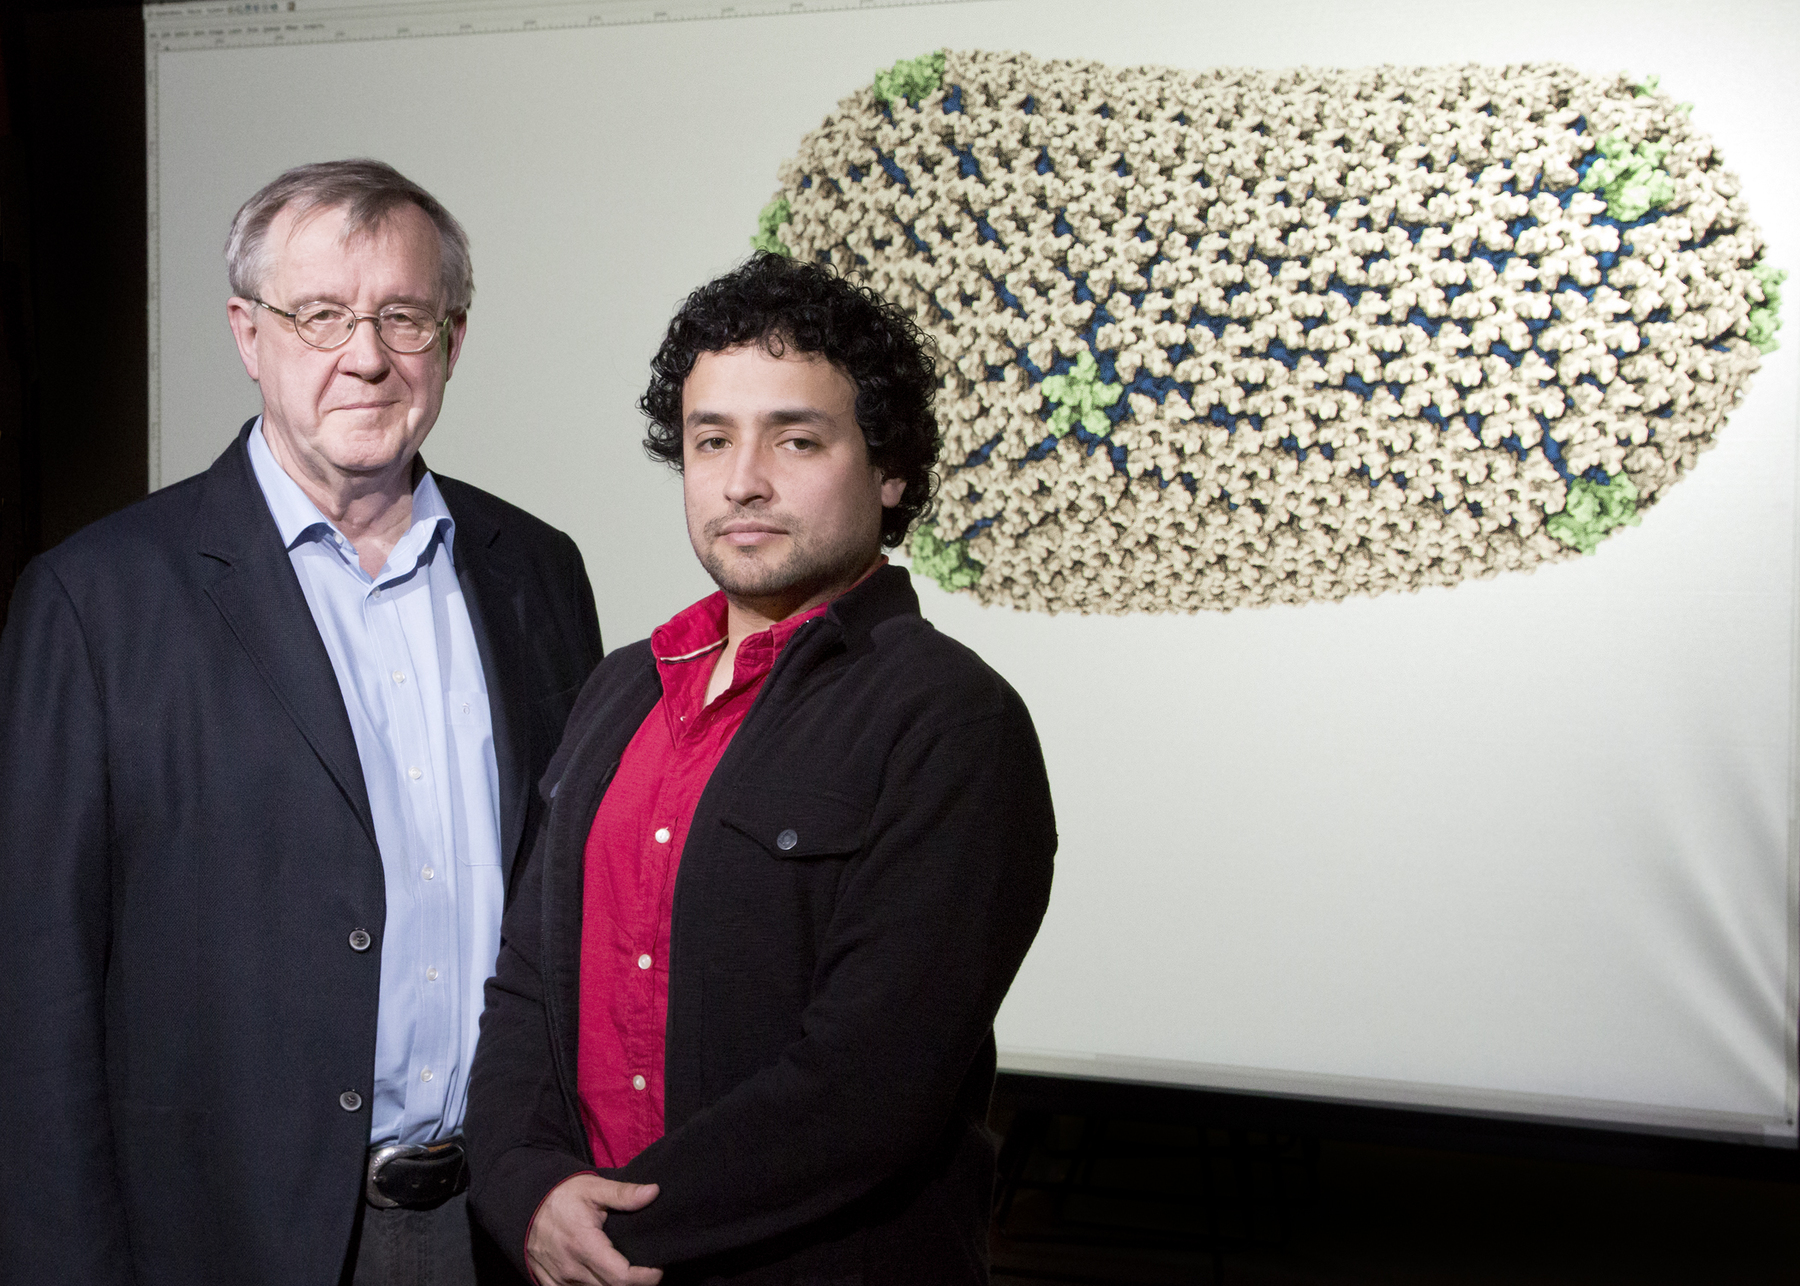 Physics professor Klaus Schulten, postdoctoral researcher Juan R. Perilla and their colleagues used experimental data and computer simulations to determine the chemical structure of the HIV capsid.